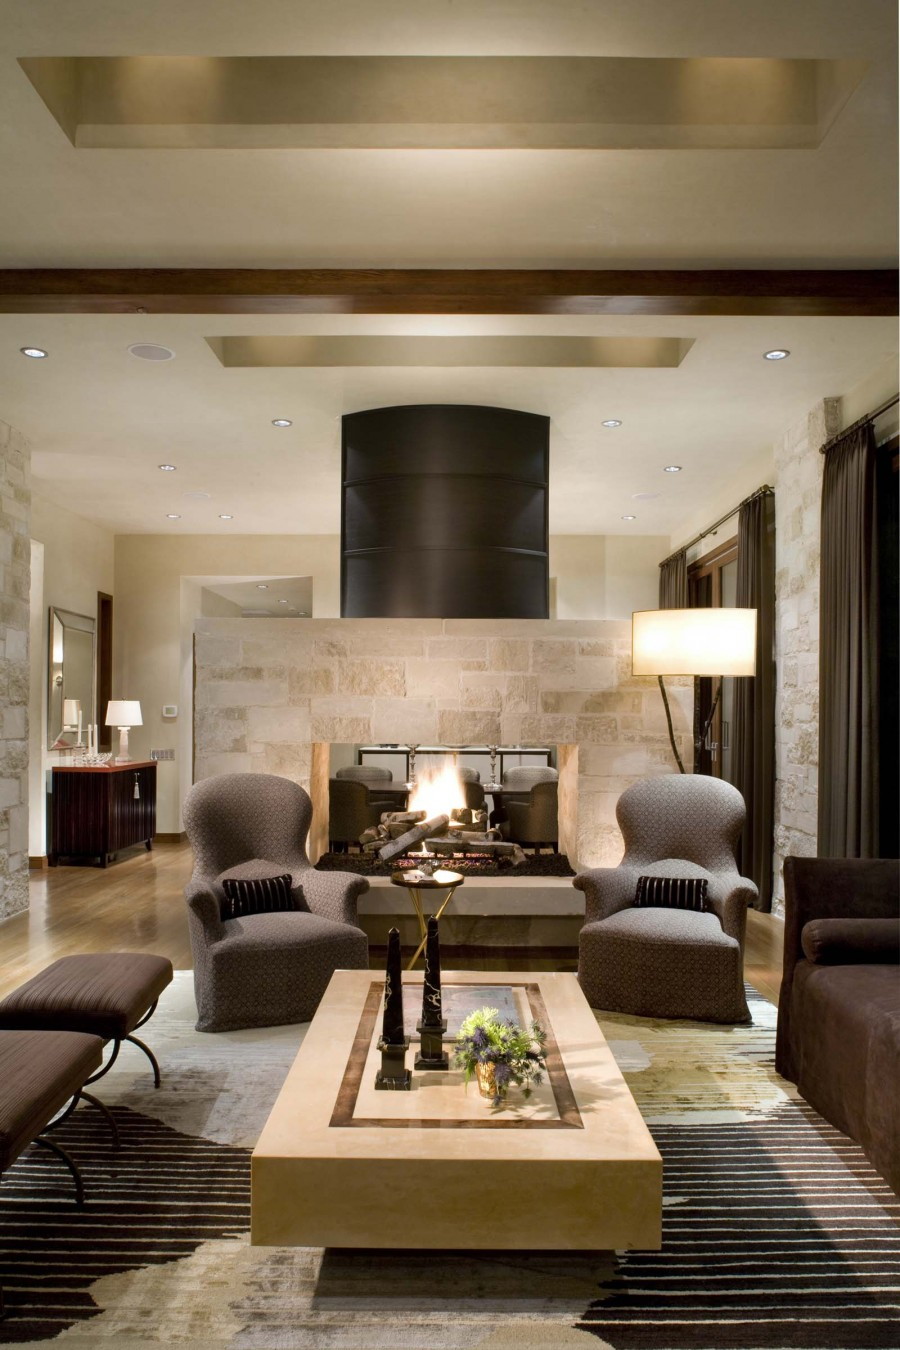 Home Decorating Ideas Interior Design: 16 Fabulous Earth Tones Living Room Designs